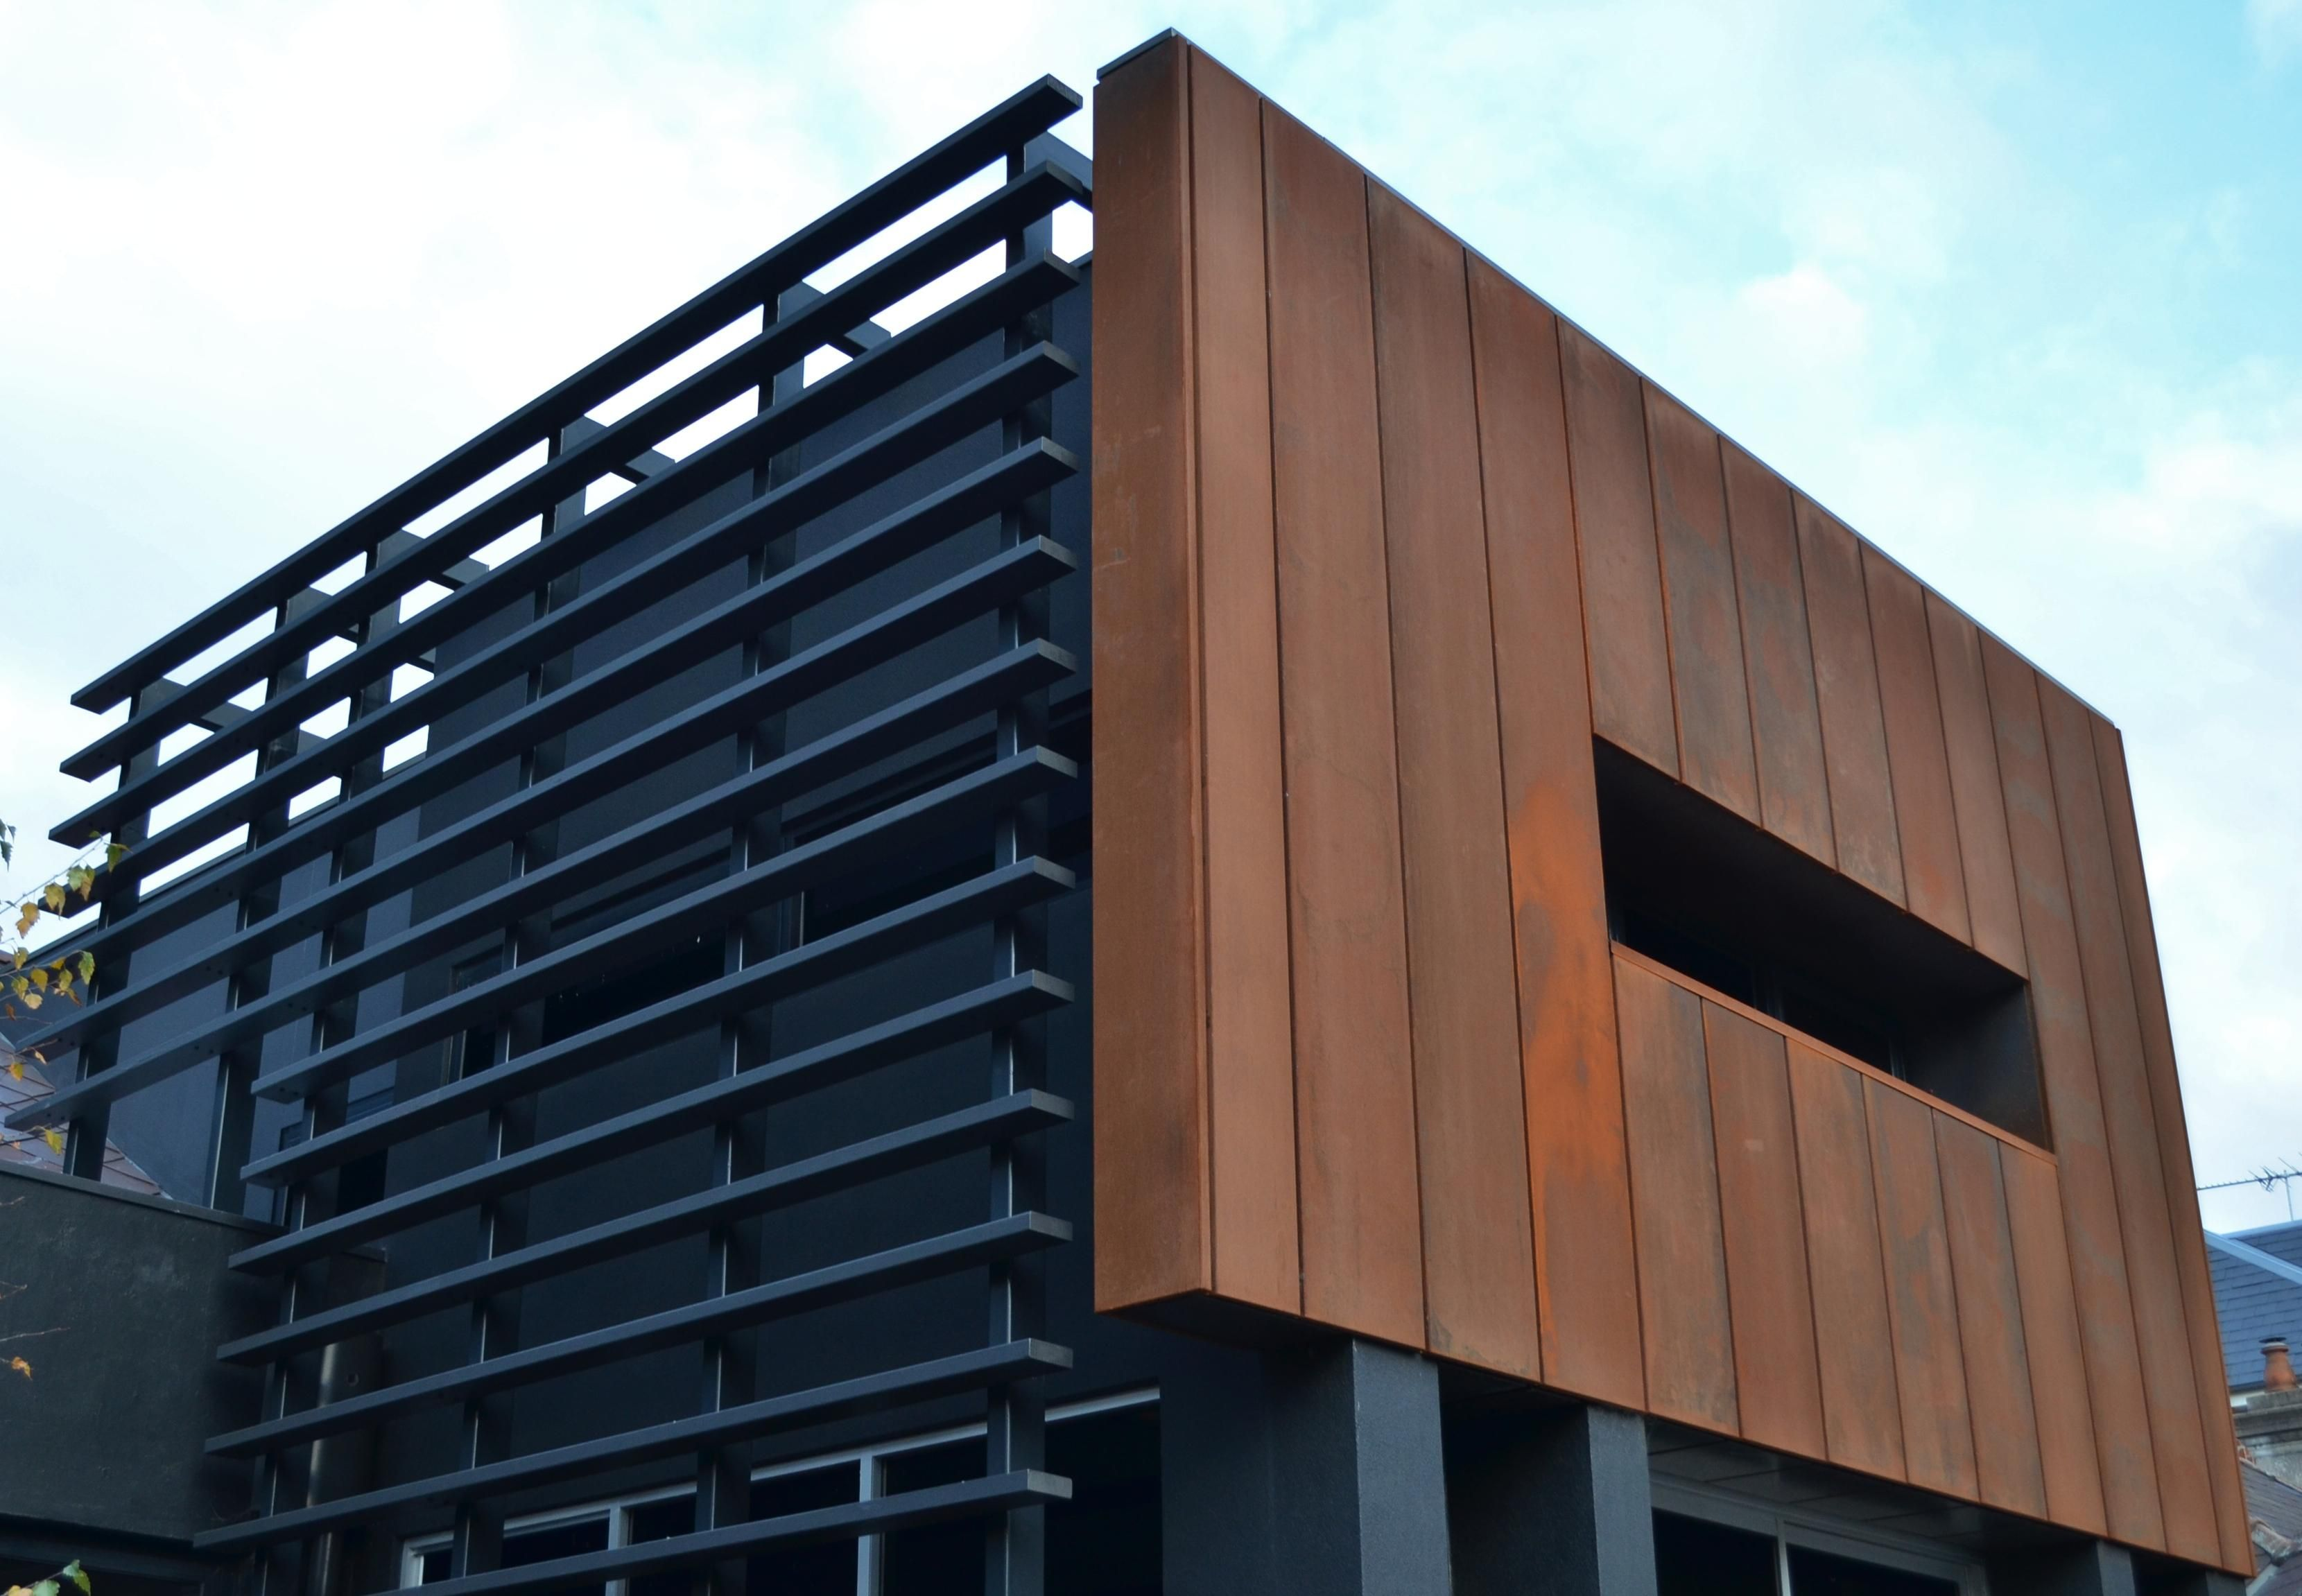 Cassette Panel Corten Exterior Wall Cladding House Cladding